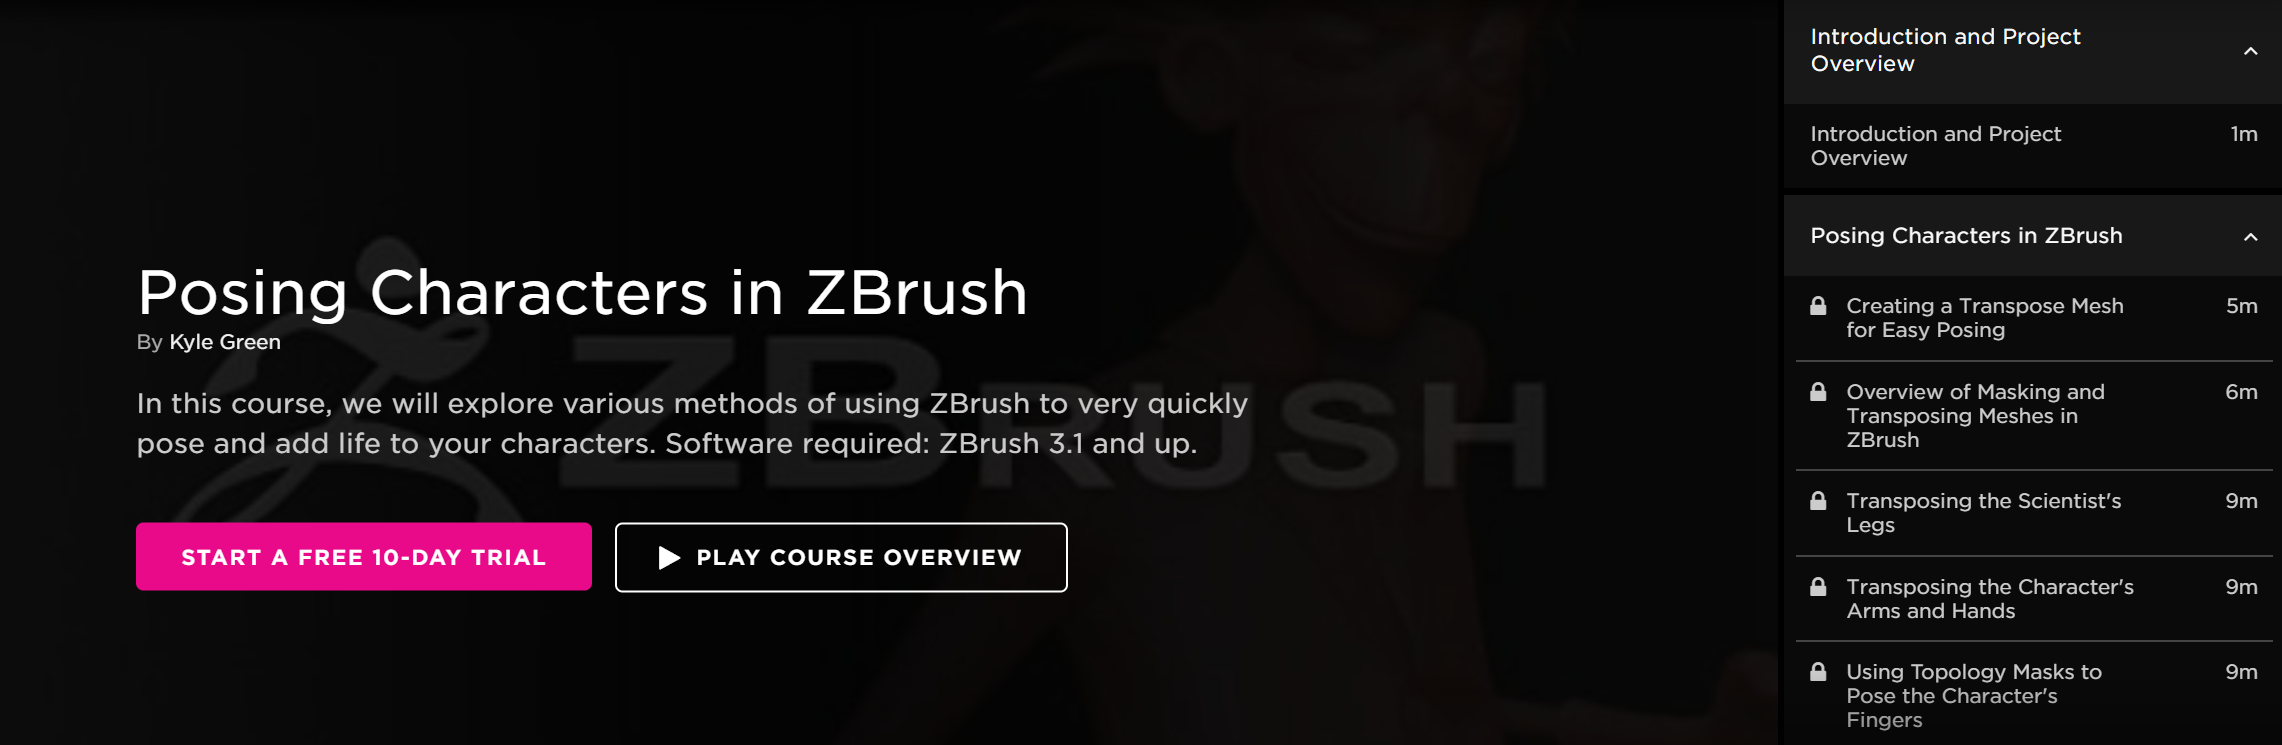 25 Best ZBrush Tutorials & Courses for Legendary Graphics